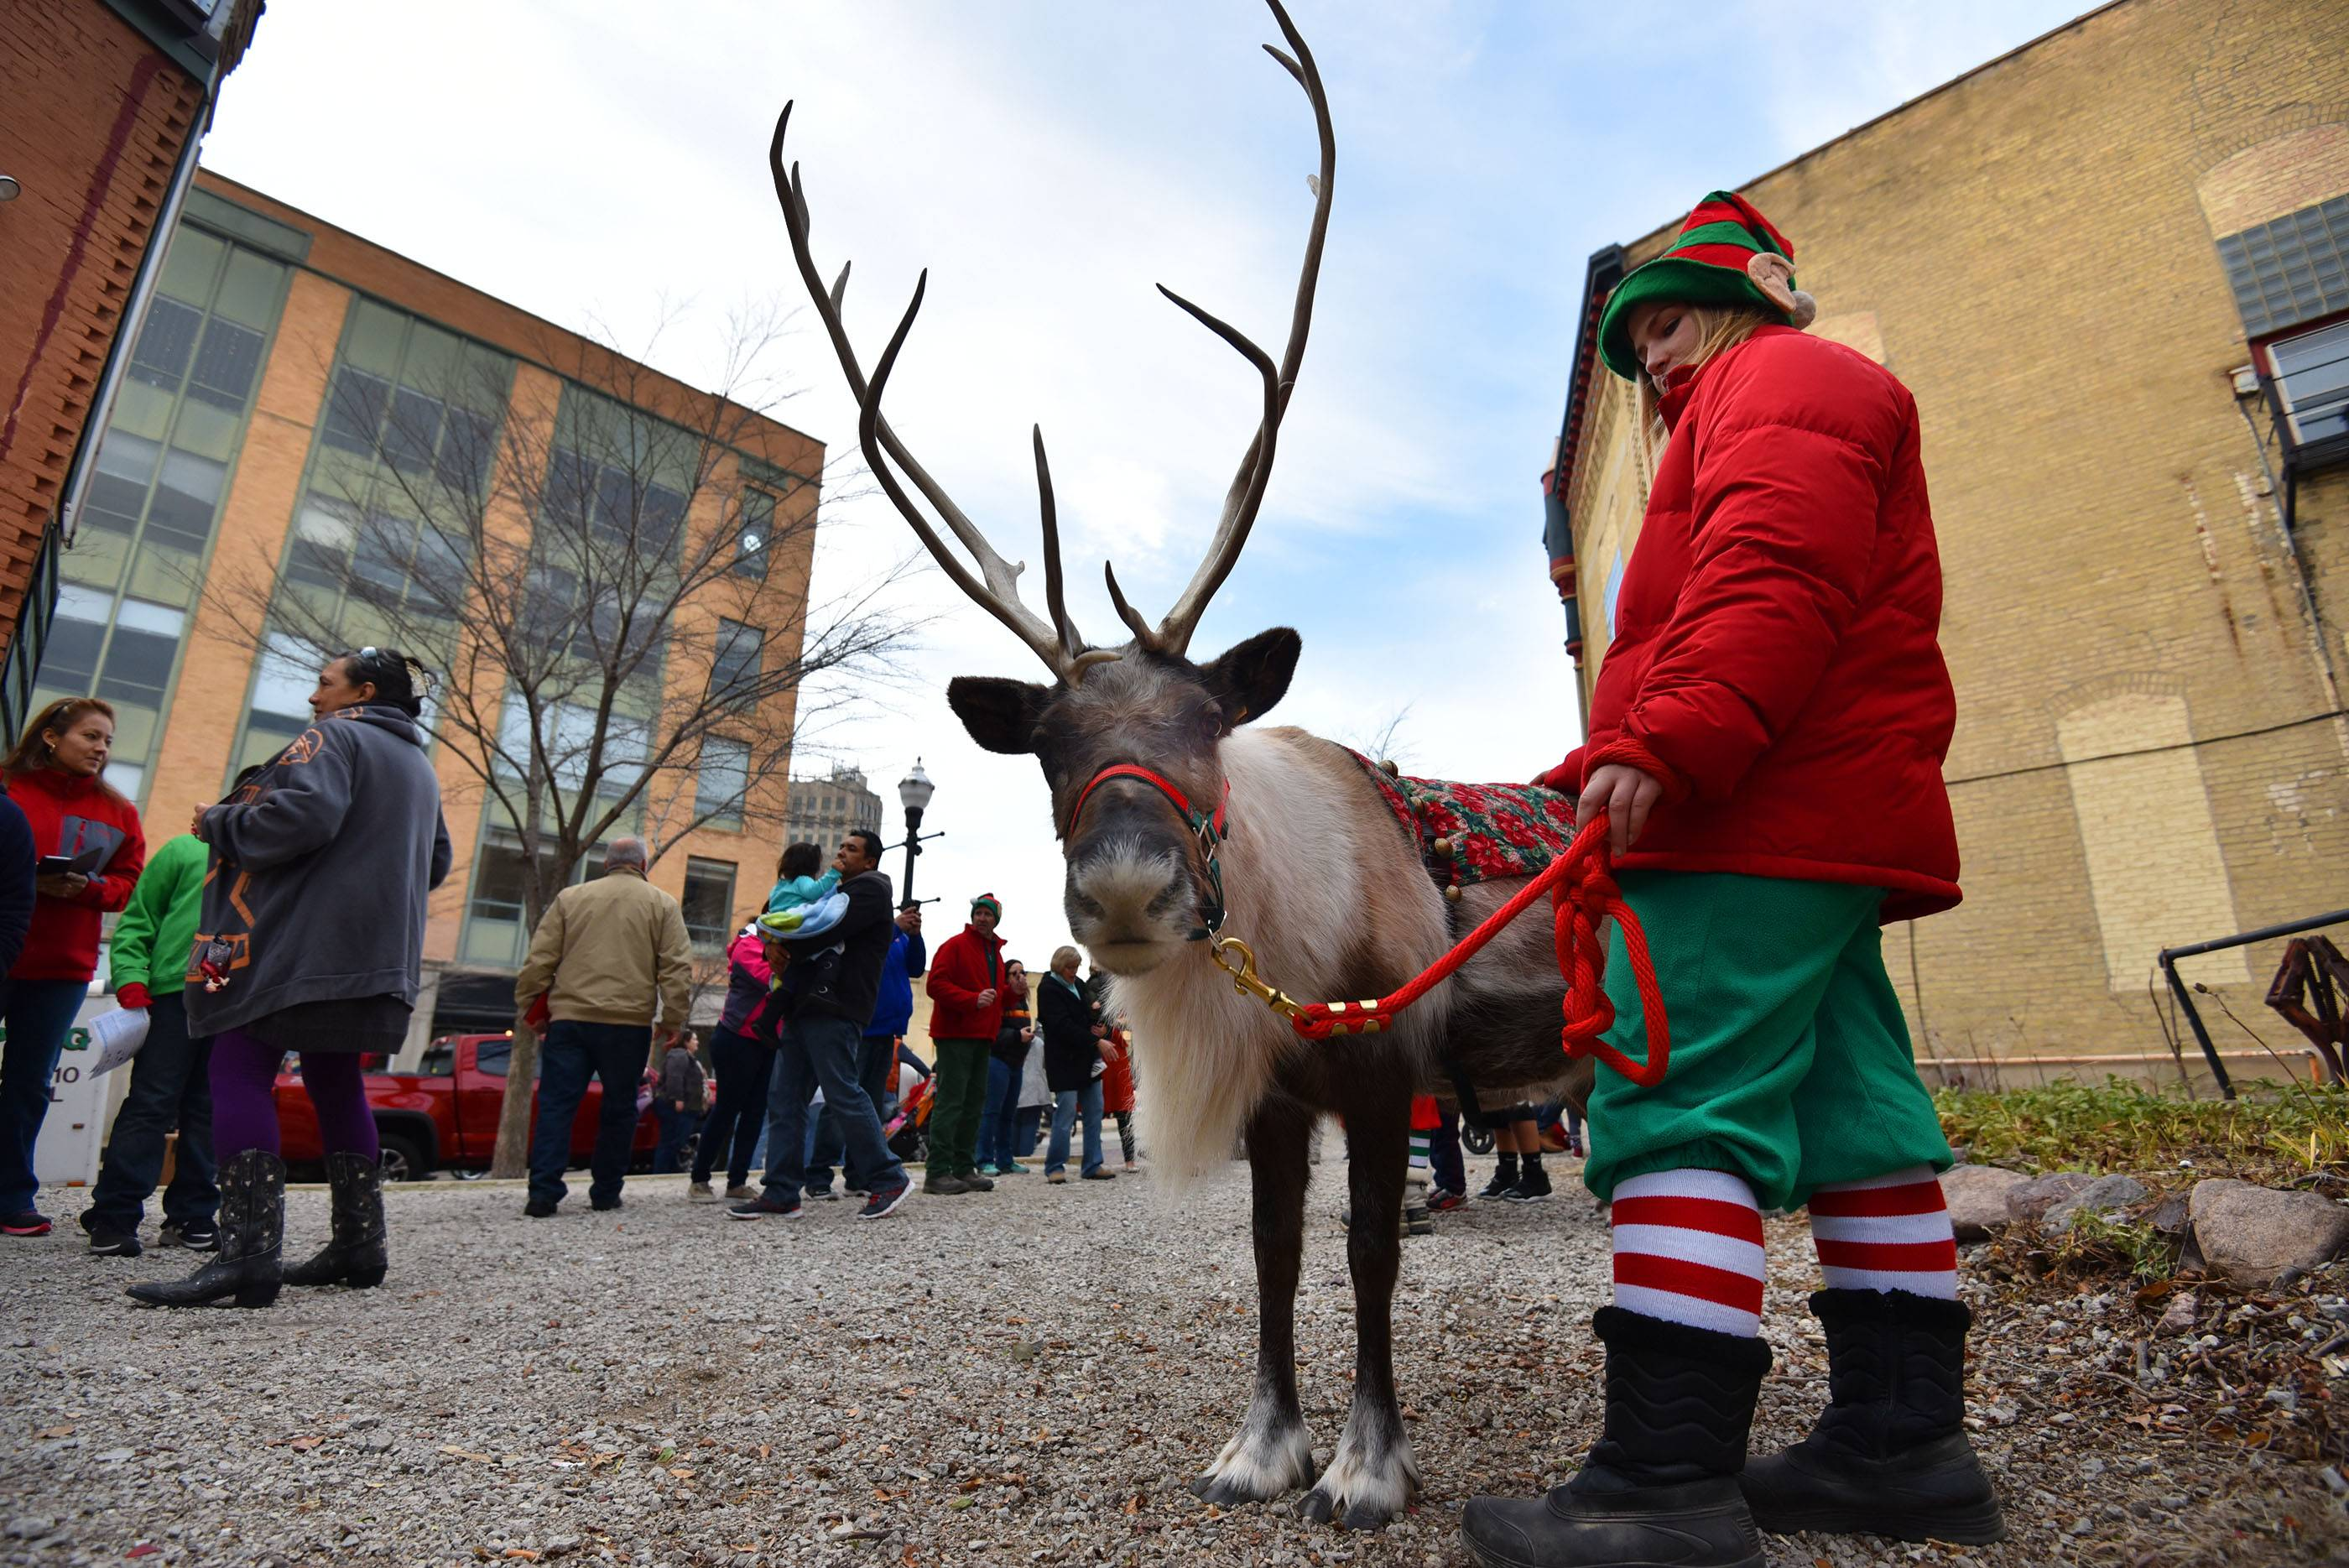 A reindeer named Snowflake is shepherded by an elf at Elgin's Winter Wonderland event in downtown Elgin Saturday. They are from Summerfield Zoo in Belvidere.